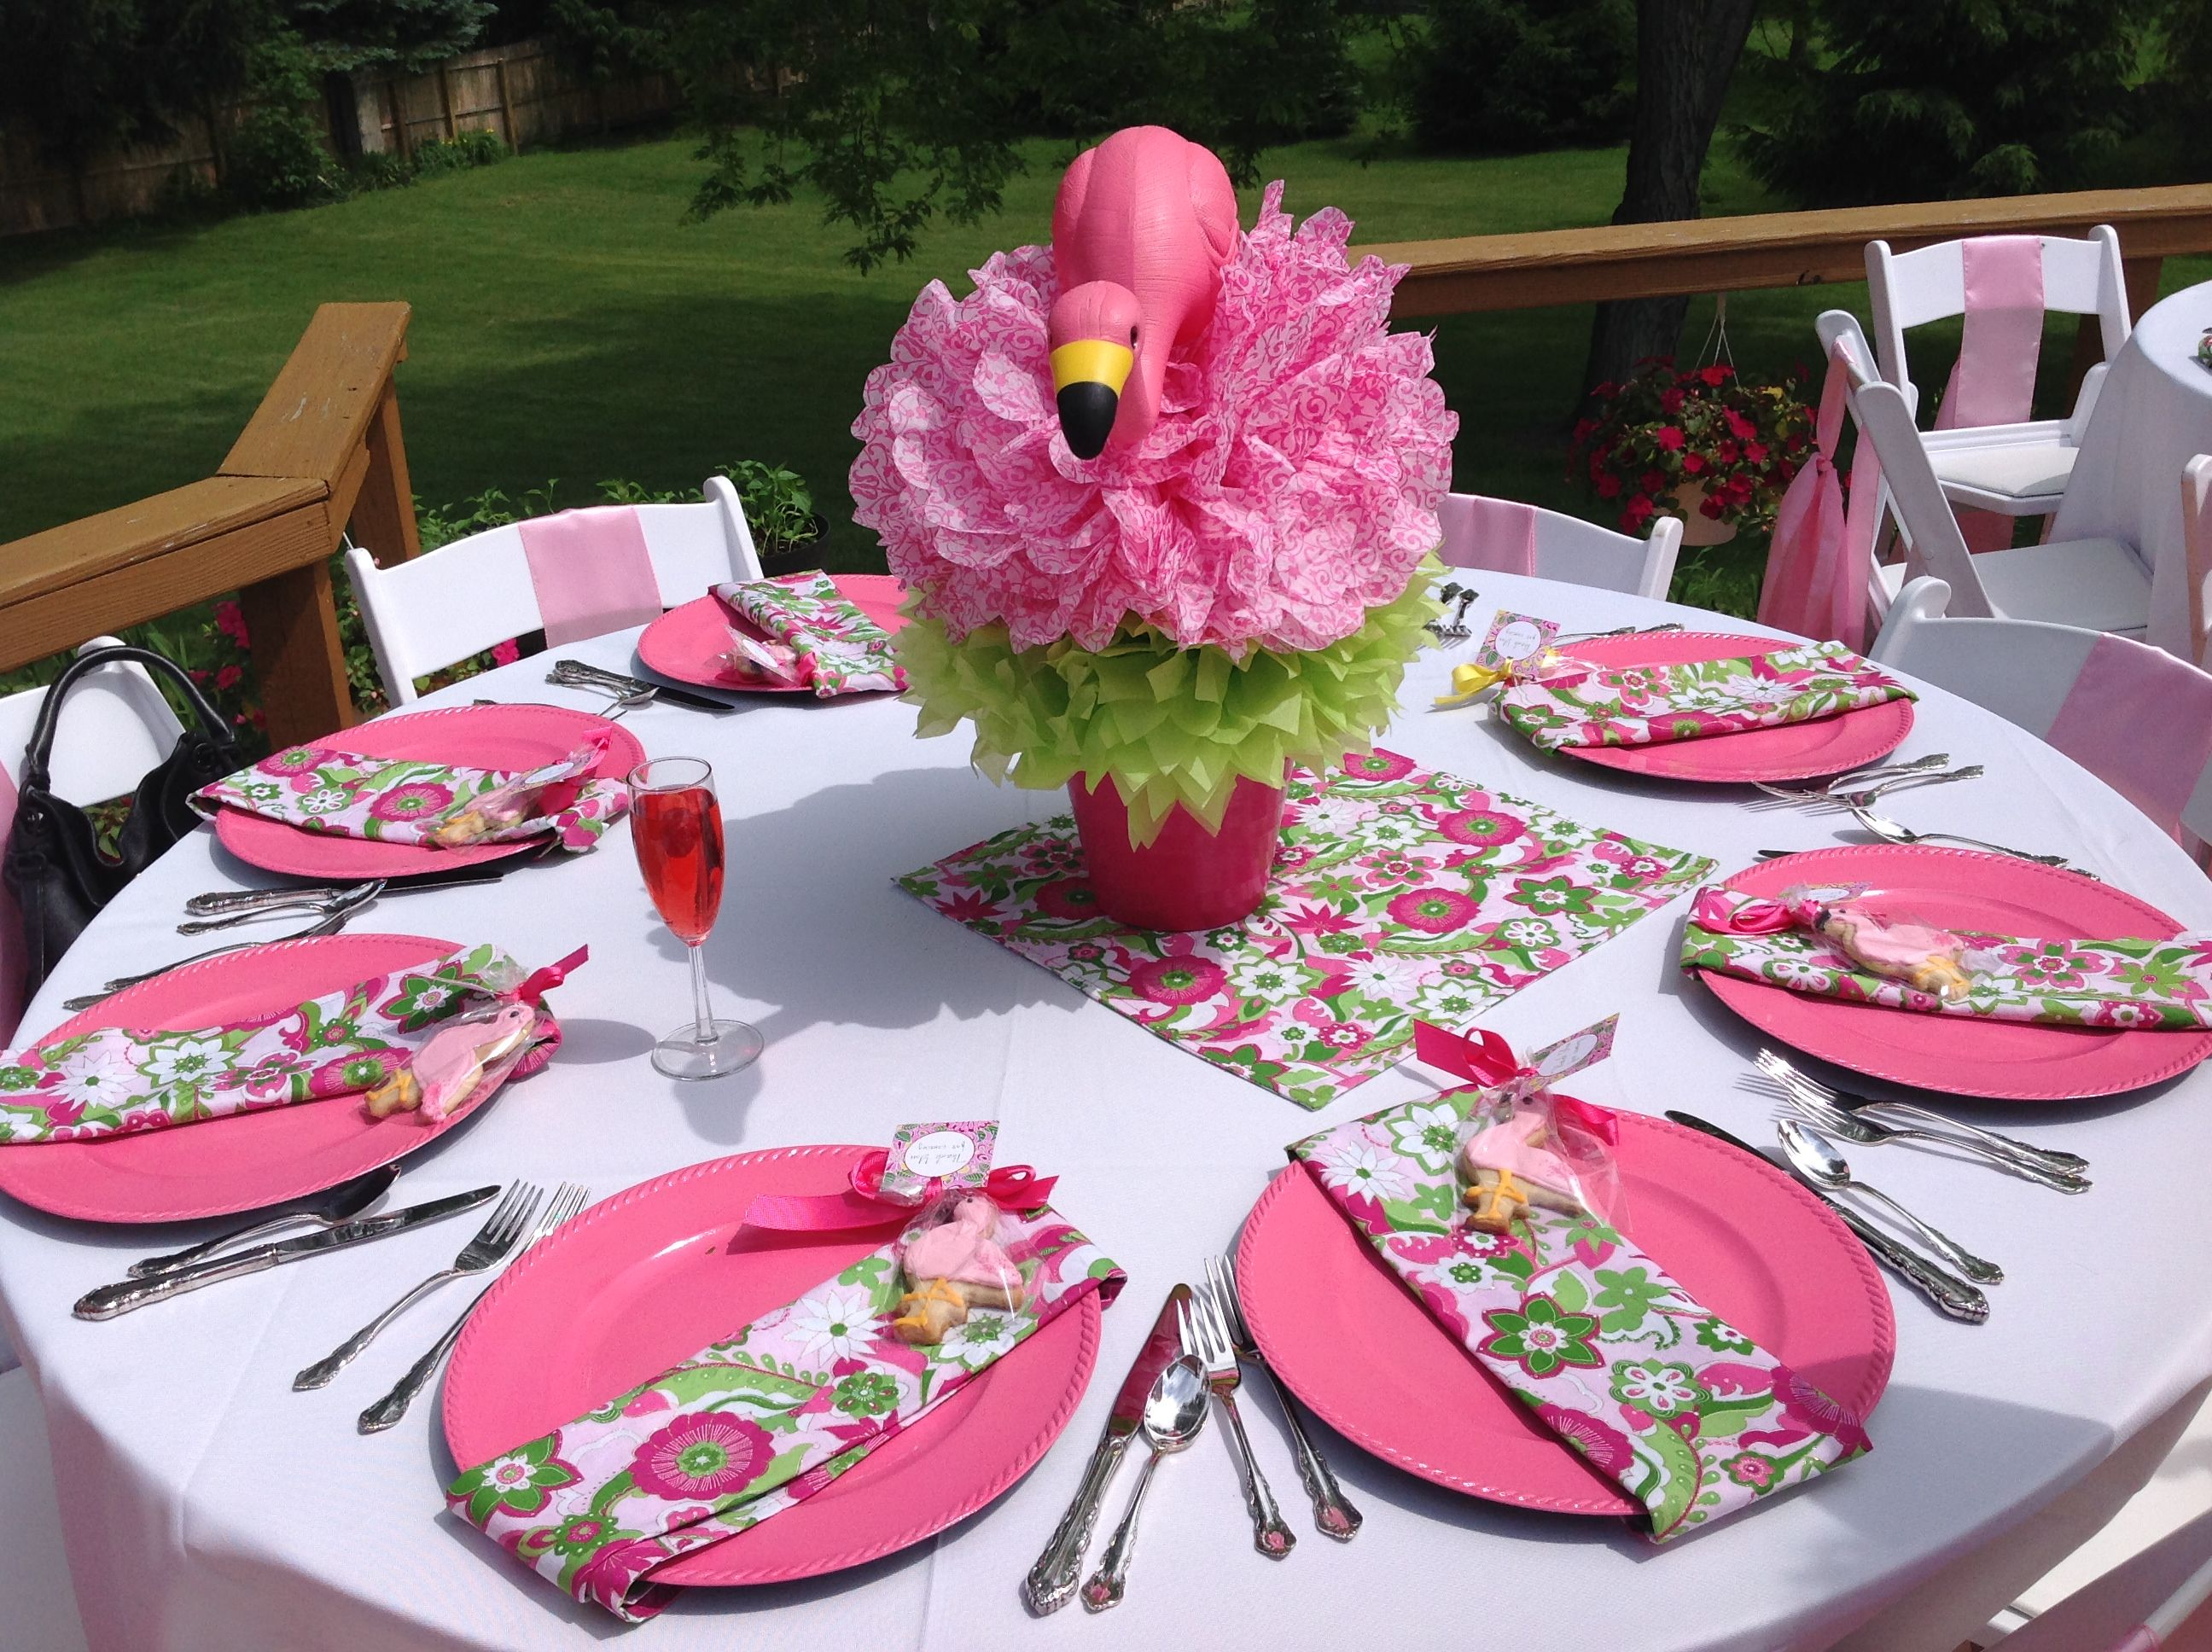 diy flamingo centerpieces for lilly pulitzer summer bridal shower bought flamingos at lowes set them in pink pots from hobby lobby